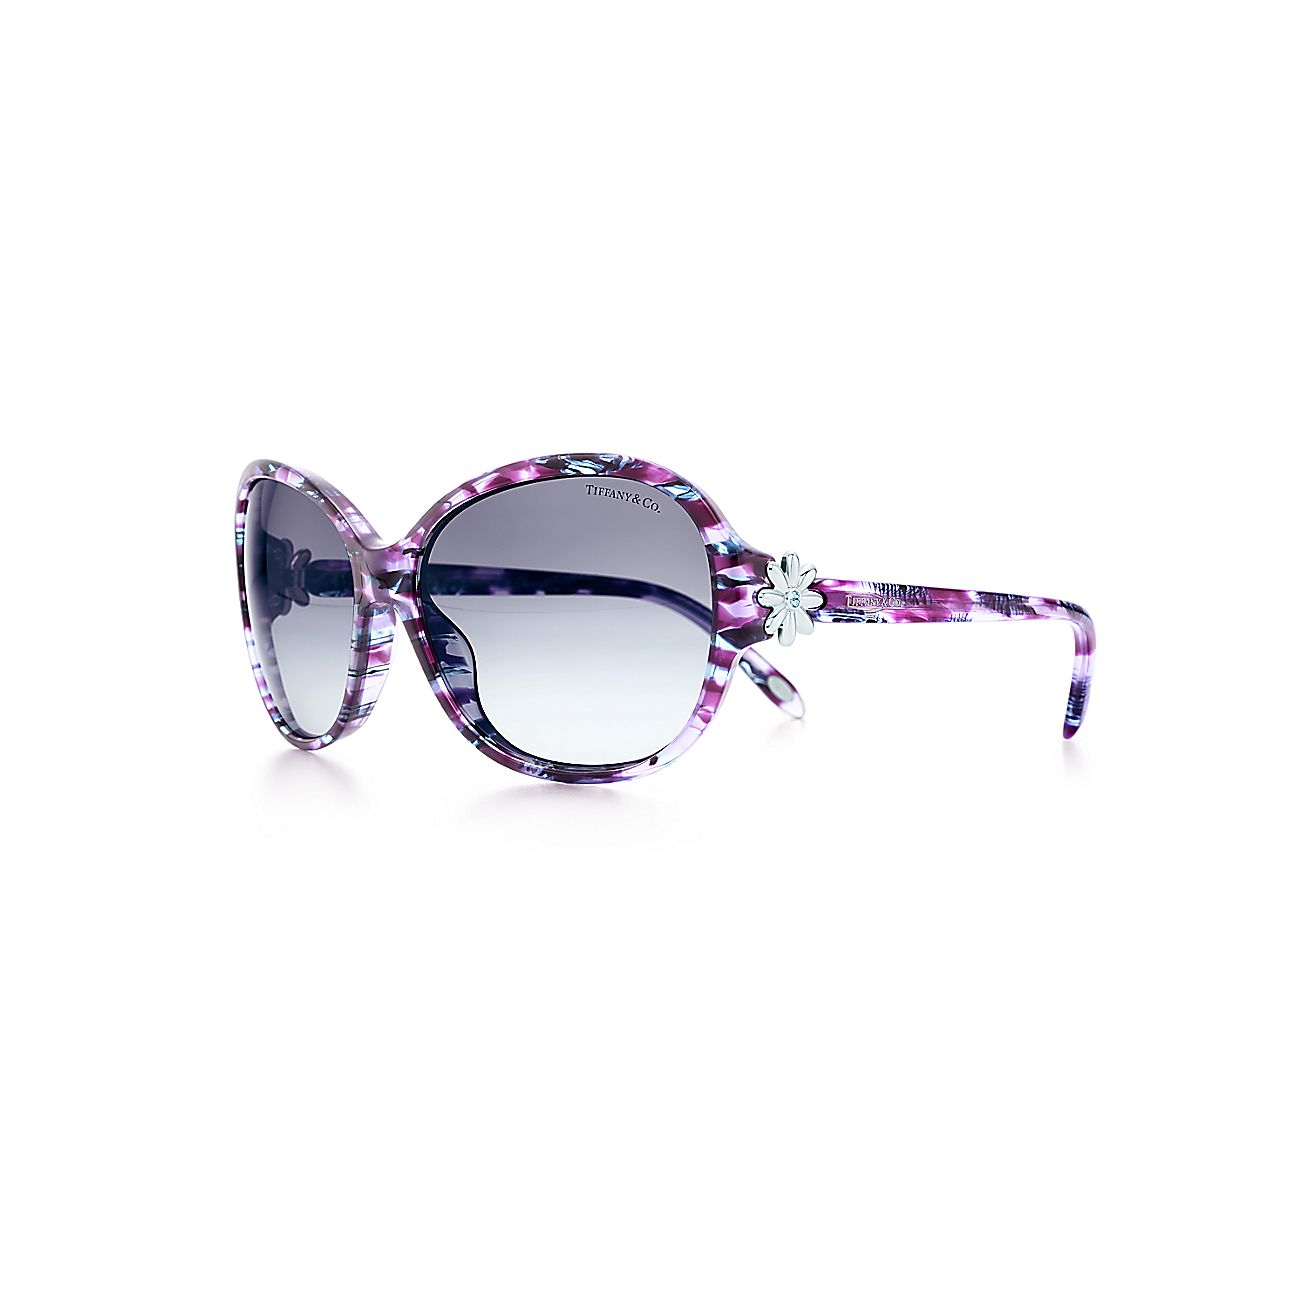 Tiffany Garden:Round Sunglasses